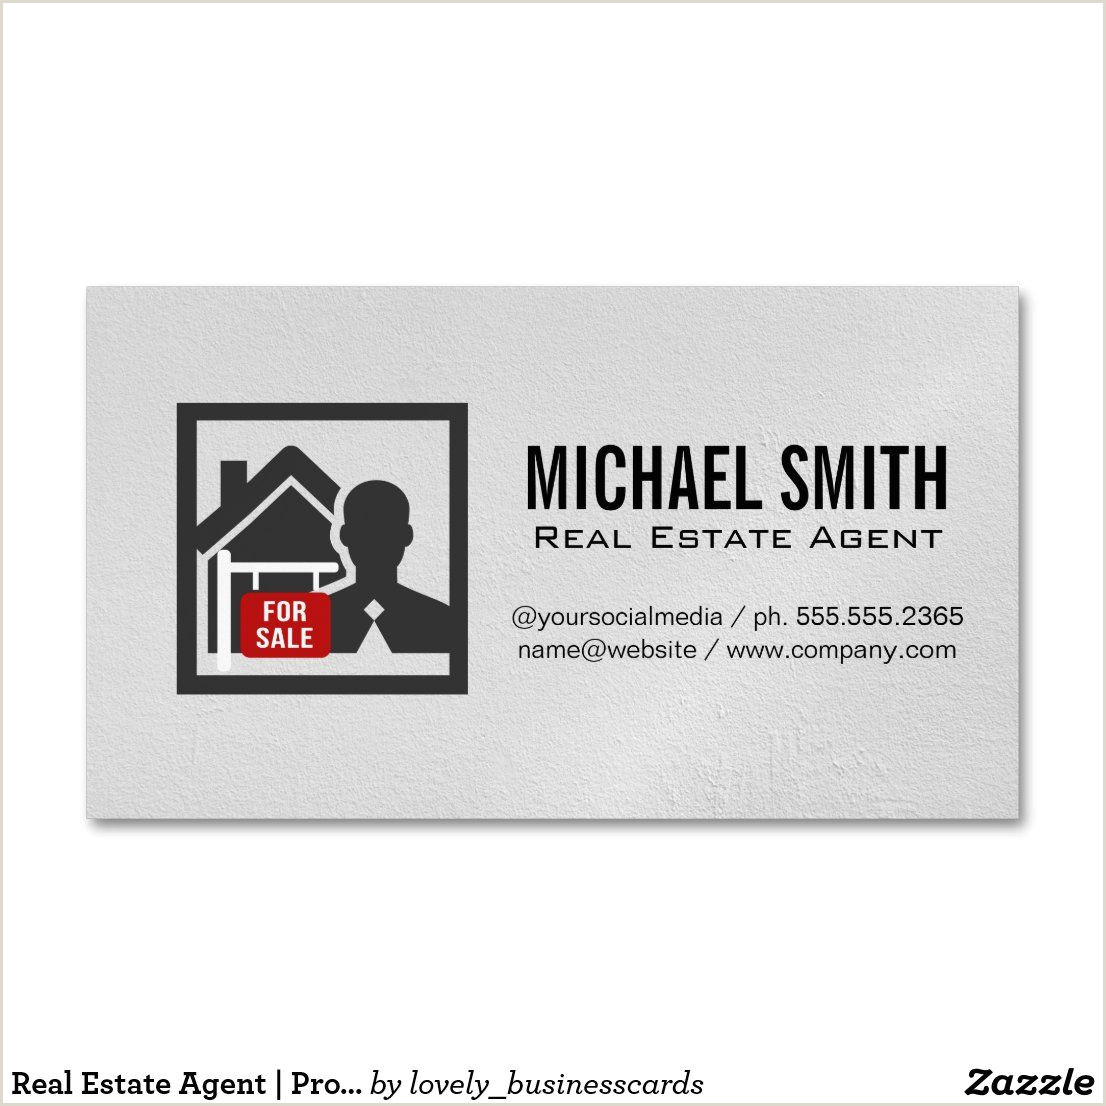 Unique Real Estate Business Cards Real Estate Agent Property Manager Business Card